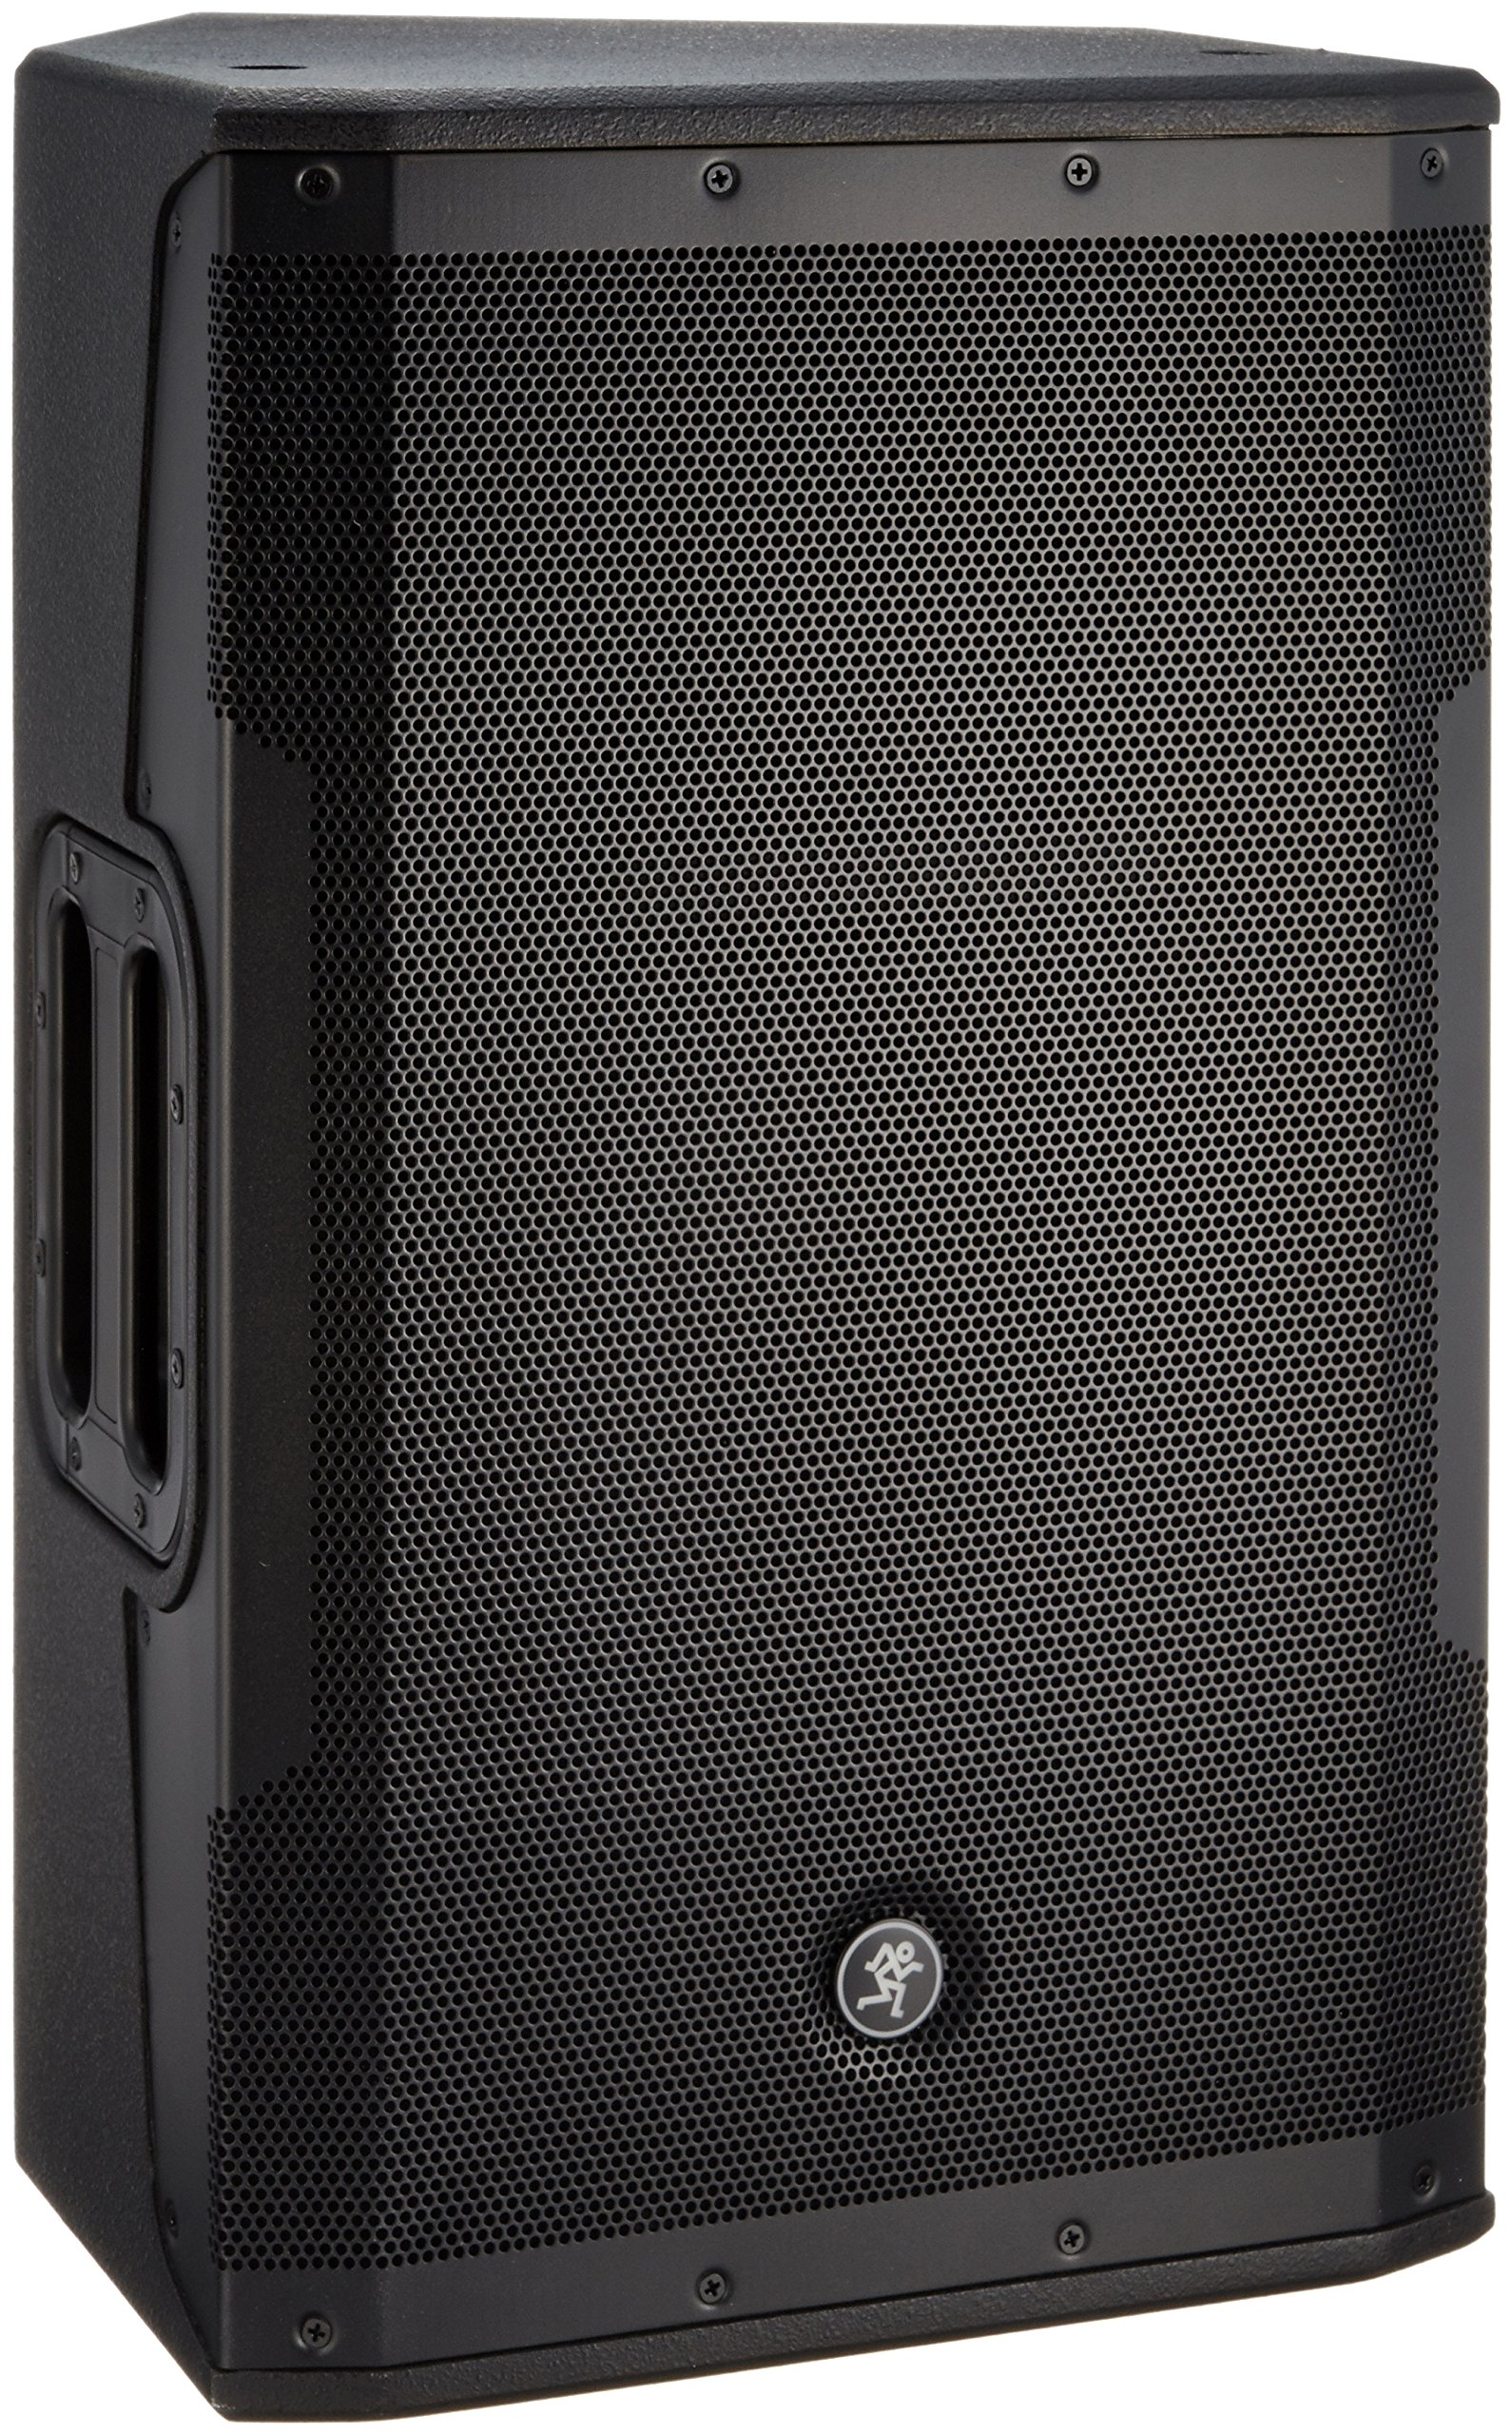 Mackie SRM550 SRM Series 1600-Watt 12-Inch High-Definition Powered Loudspeaker